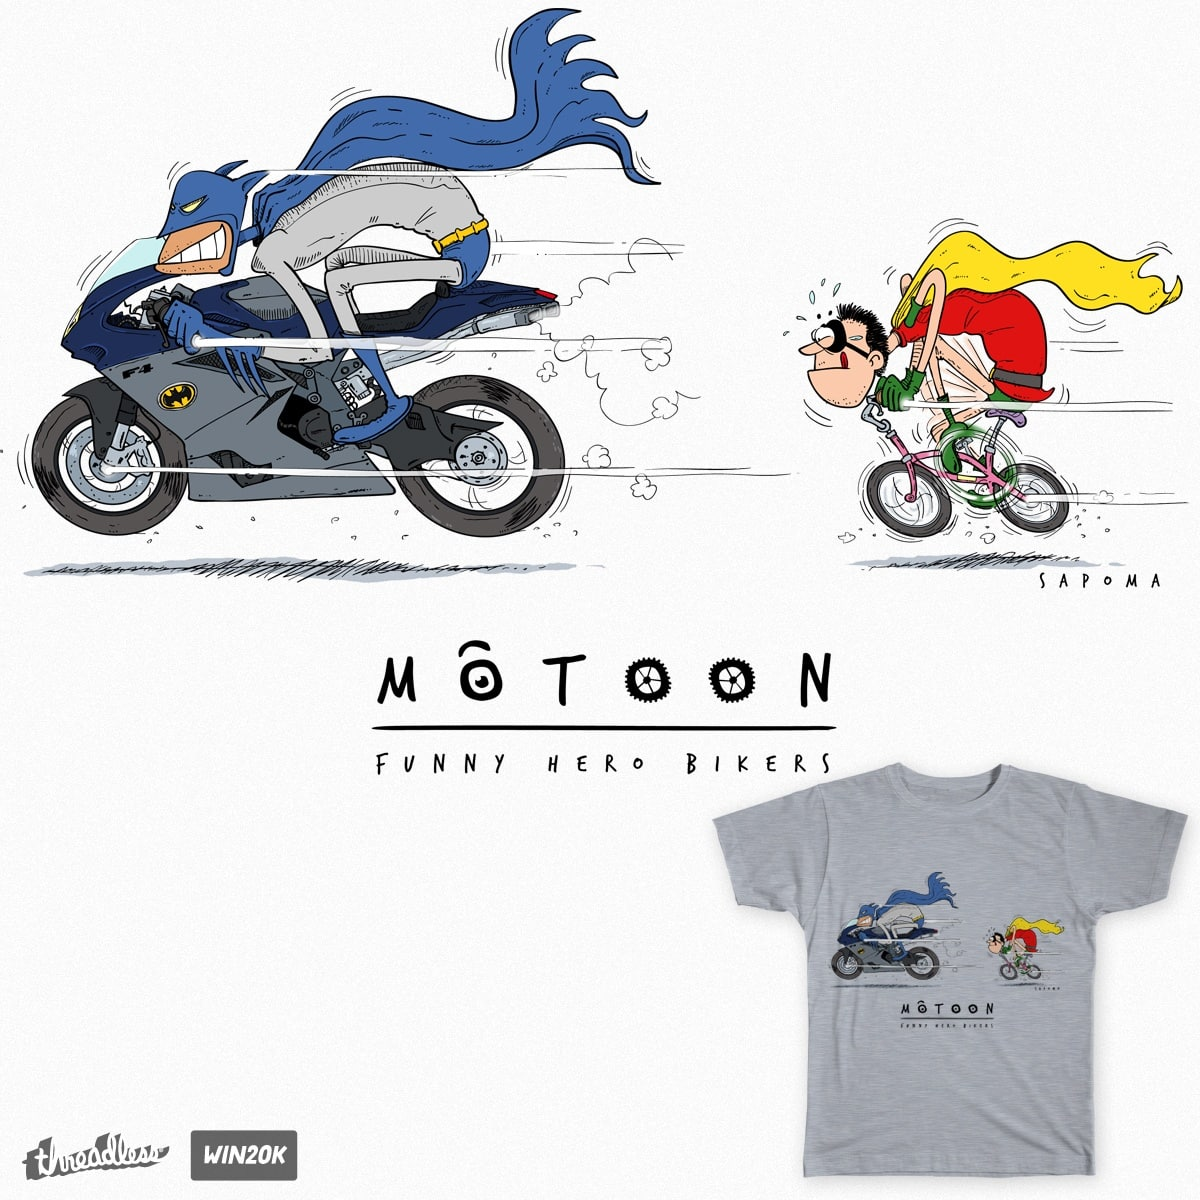 Motoon - Batman e Robin by sapoma on Threadless